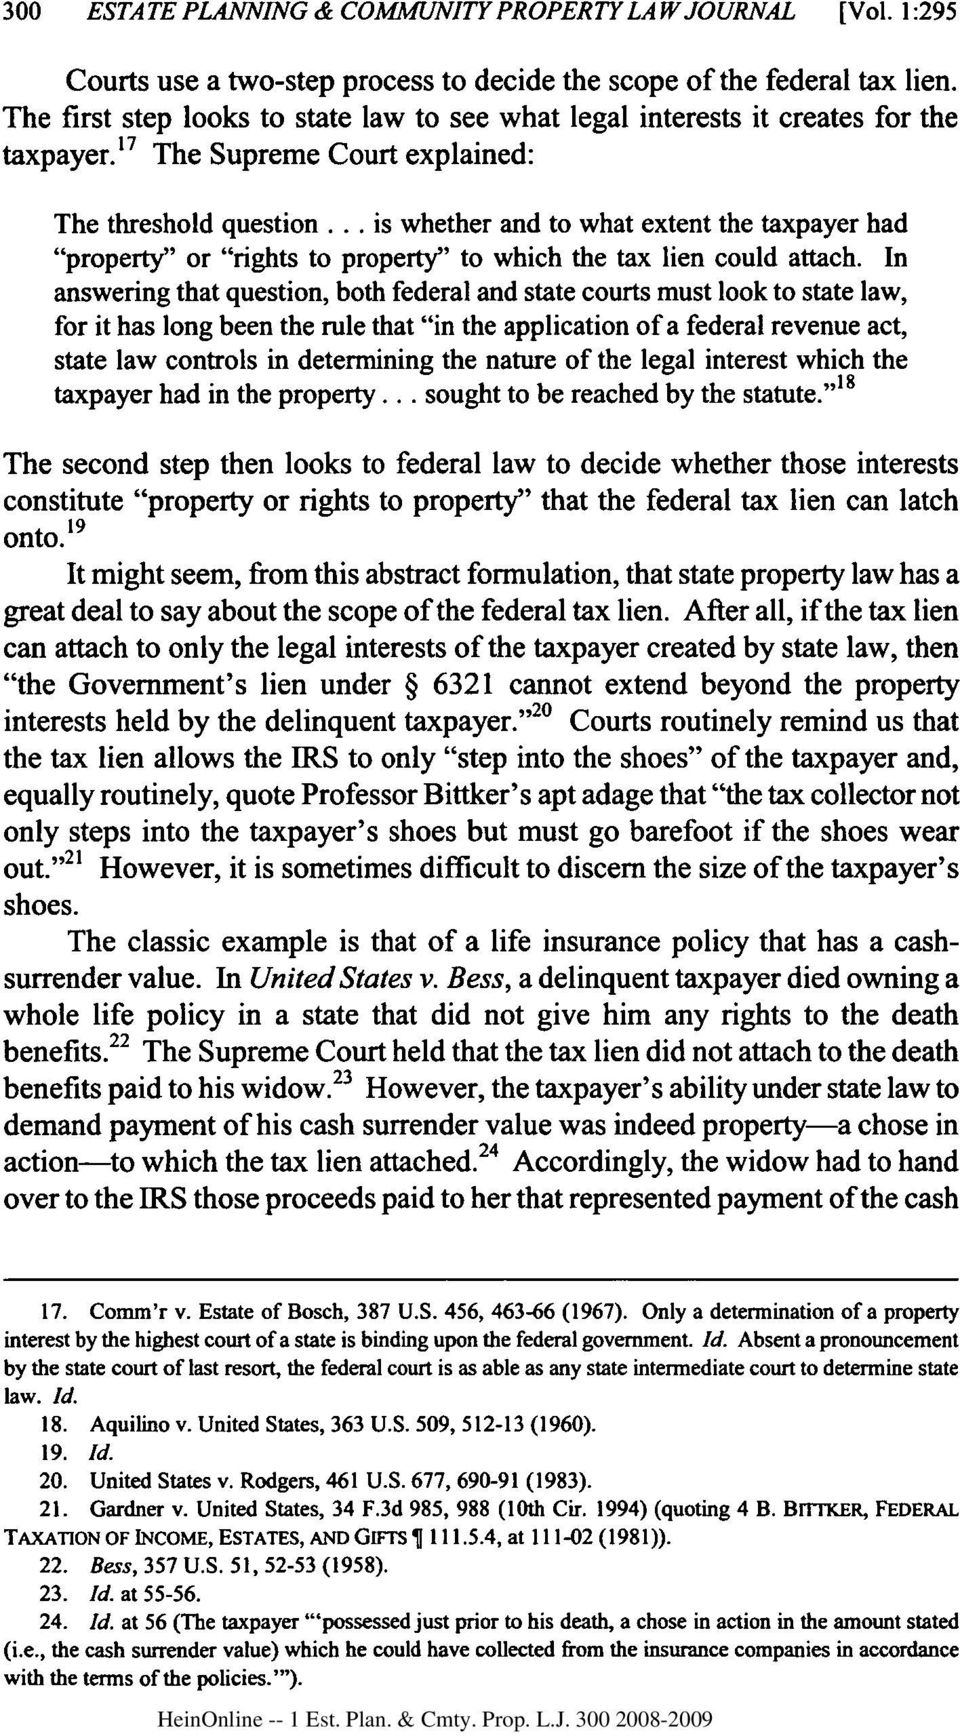 ".. is whether and to what extent the taxpayer had ""property"" or ""rights to property"" to which the tax lien could attach."